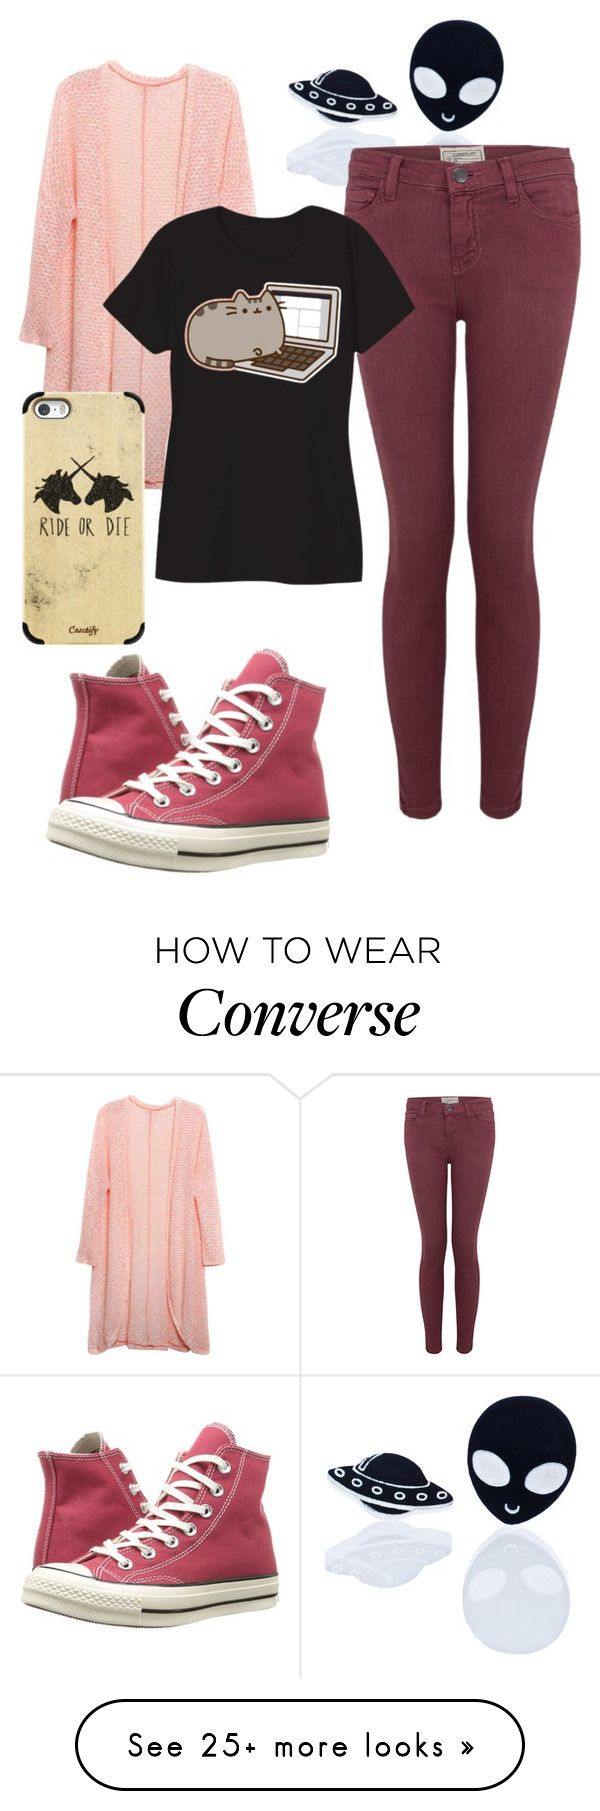 """Untitled #363"" by the-indie-rock-queen on Polyvore featuring Haus of Dizzy, Relaxfeel, Current/Elliott, Casetify, Pusheen and Converse"